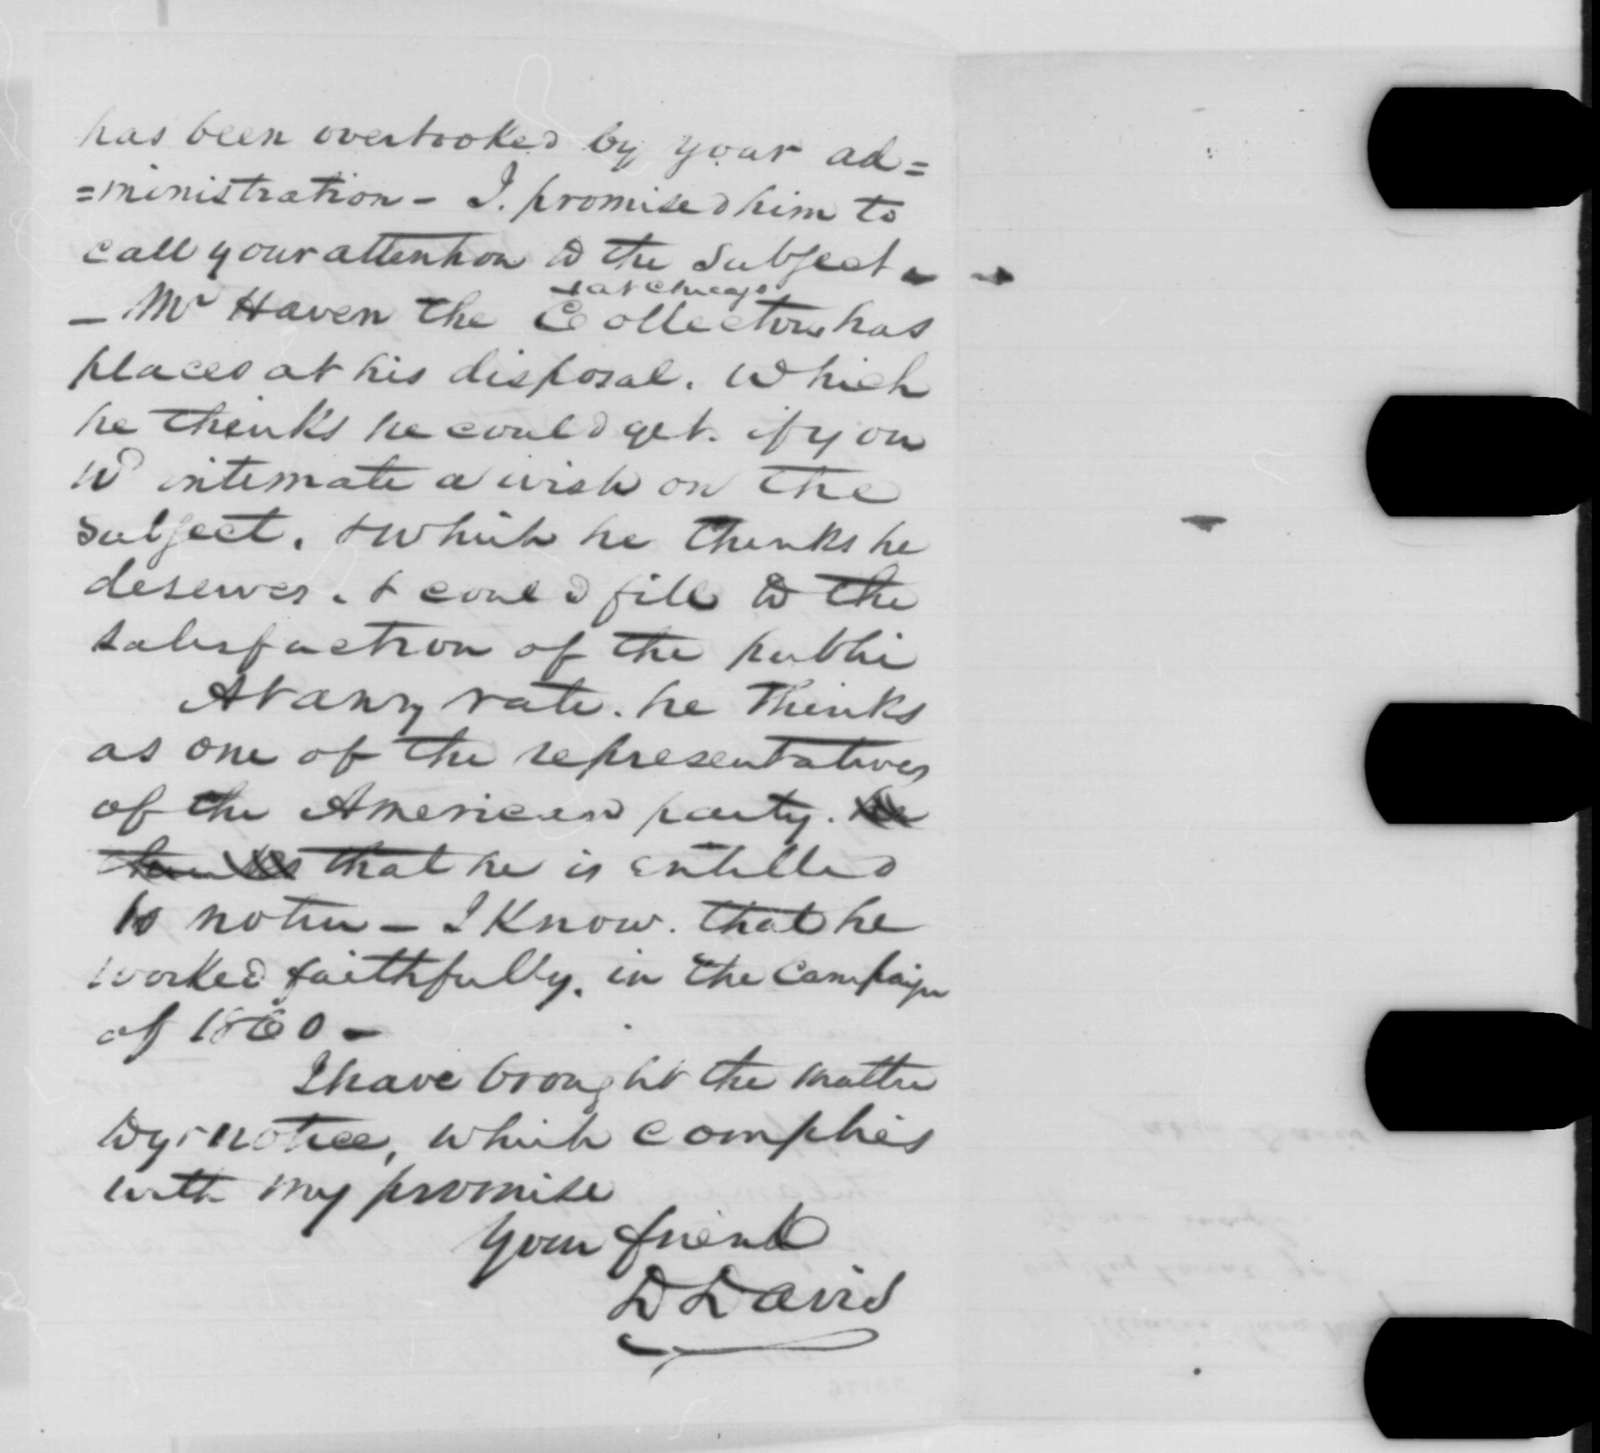 David Davis to Abraham Lincoln, Tuesday, July 28, 1863  (Patronage for Illinois Know Nothings)